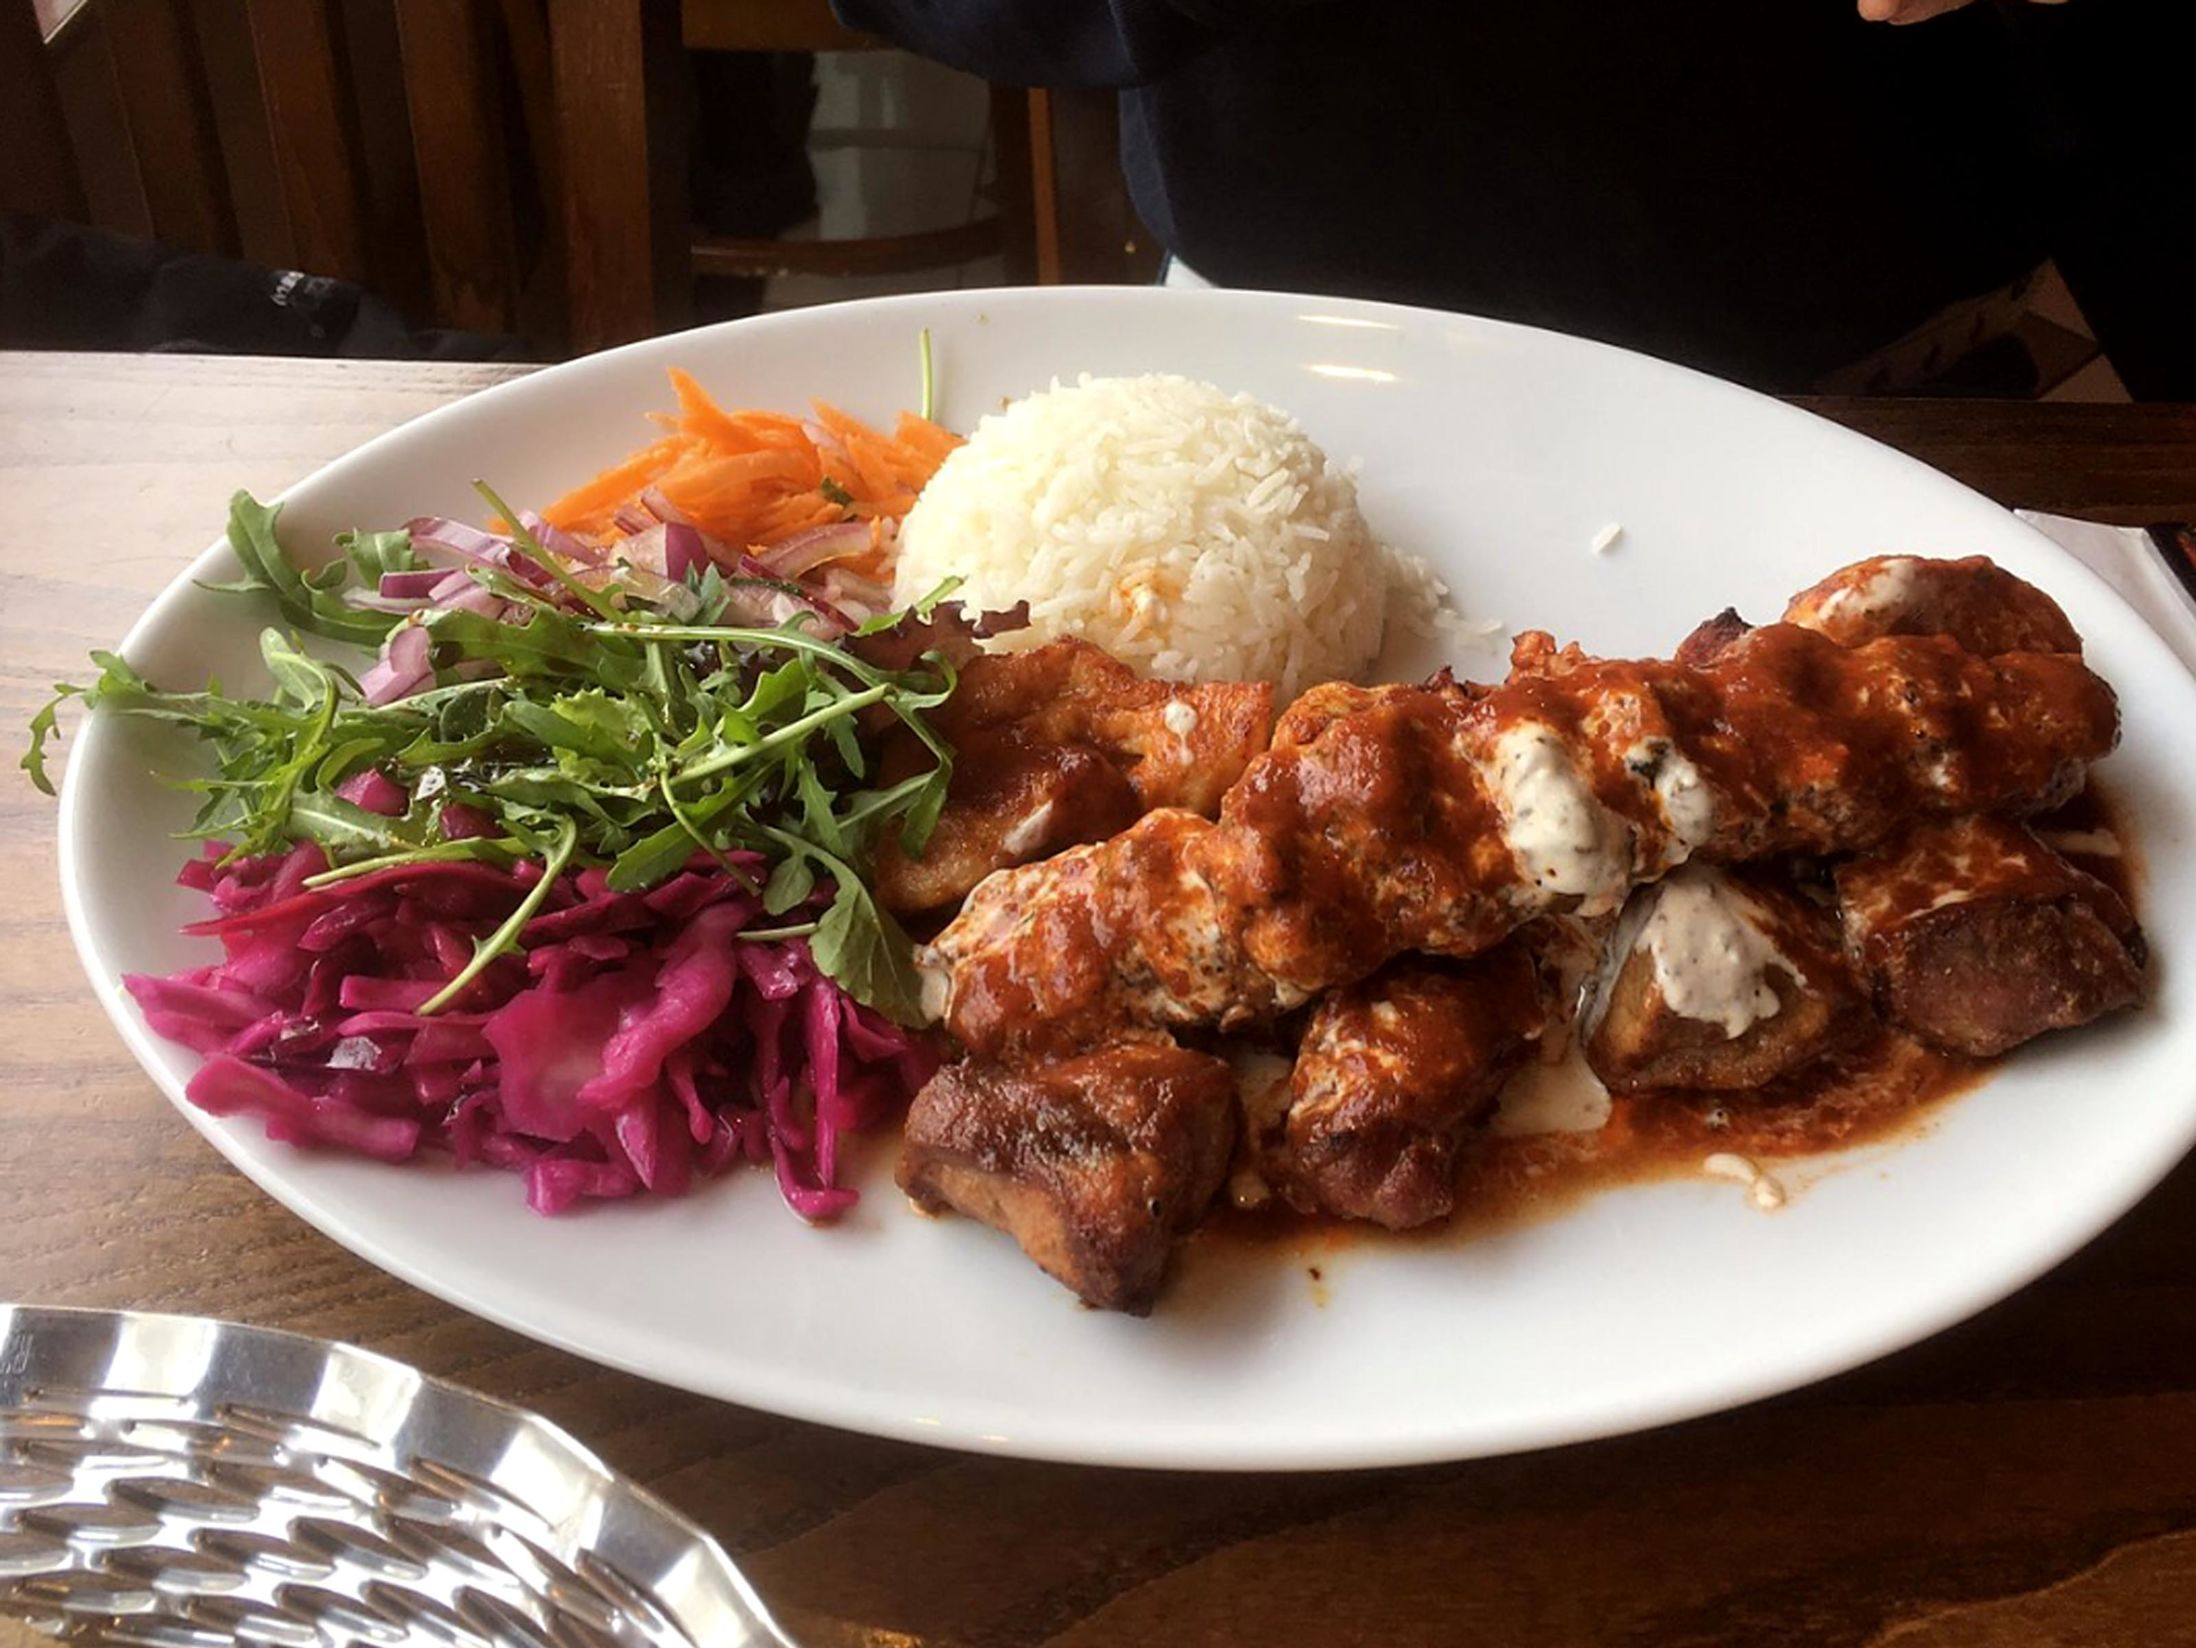 Istanbul BBQ - Best Restaurants in Chester